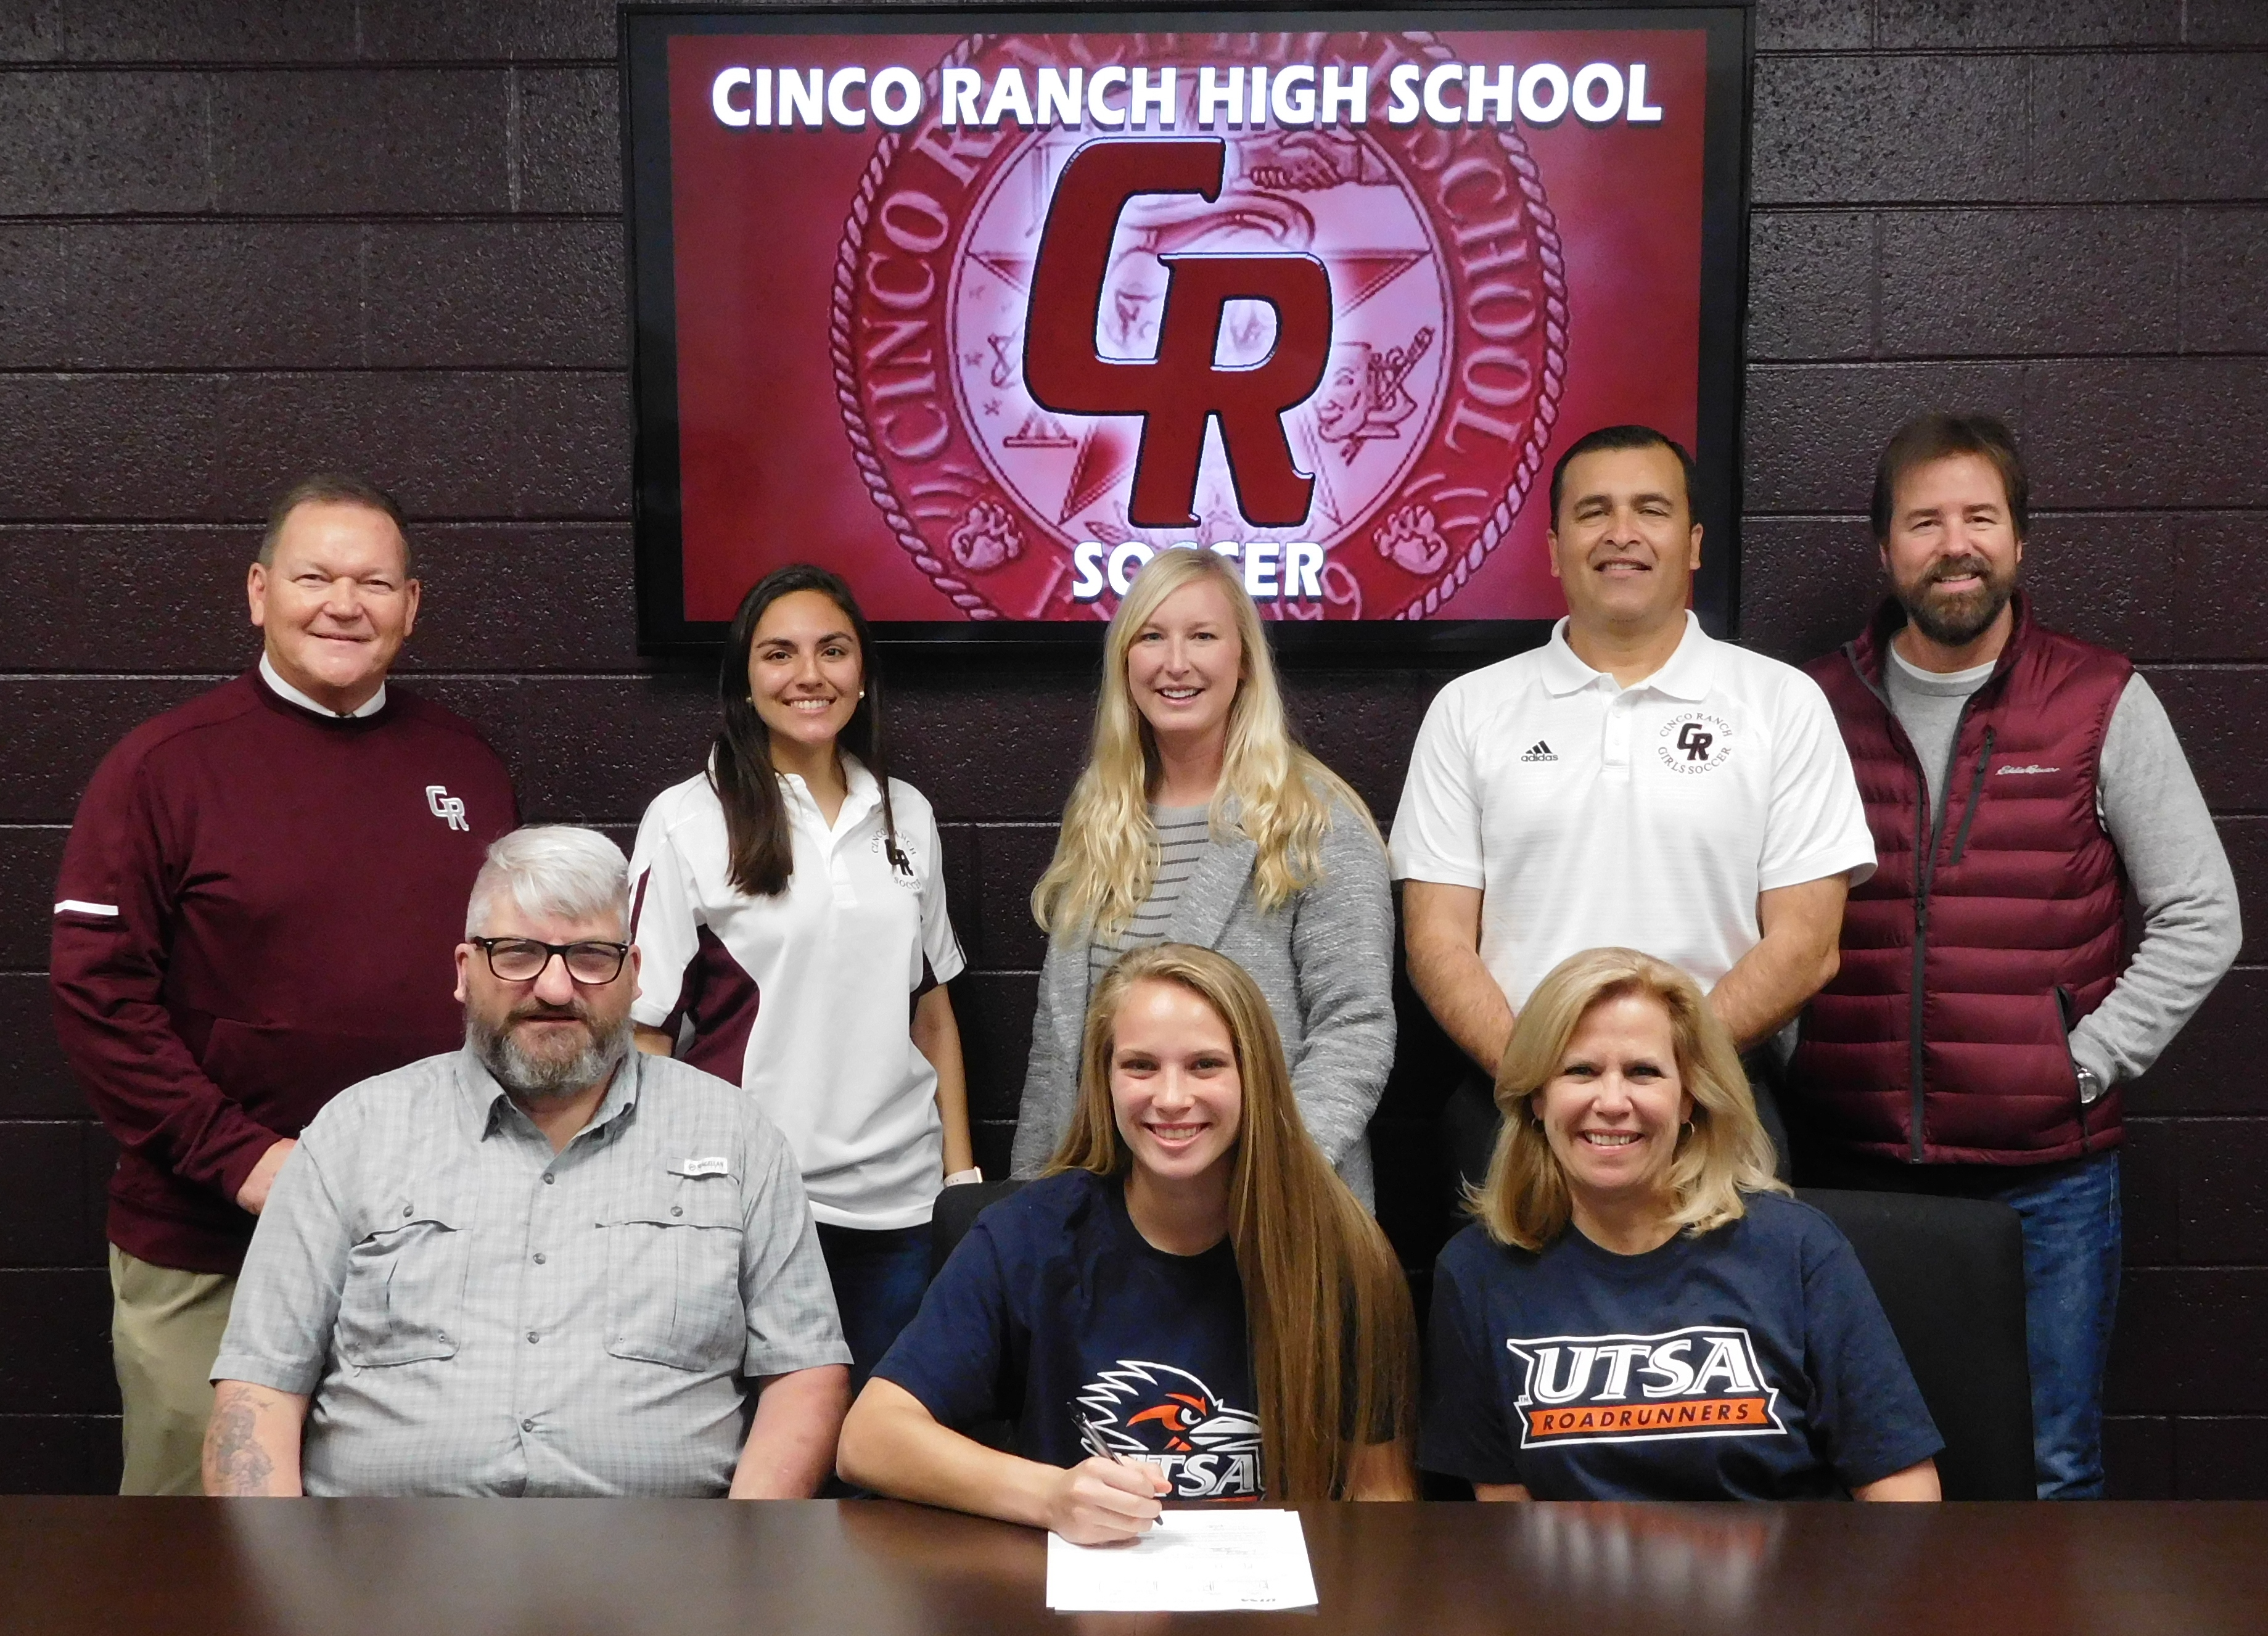 National Signing Day at Cinco Ranch